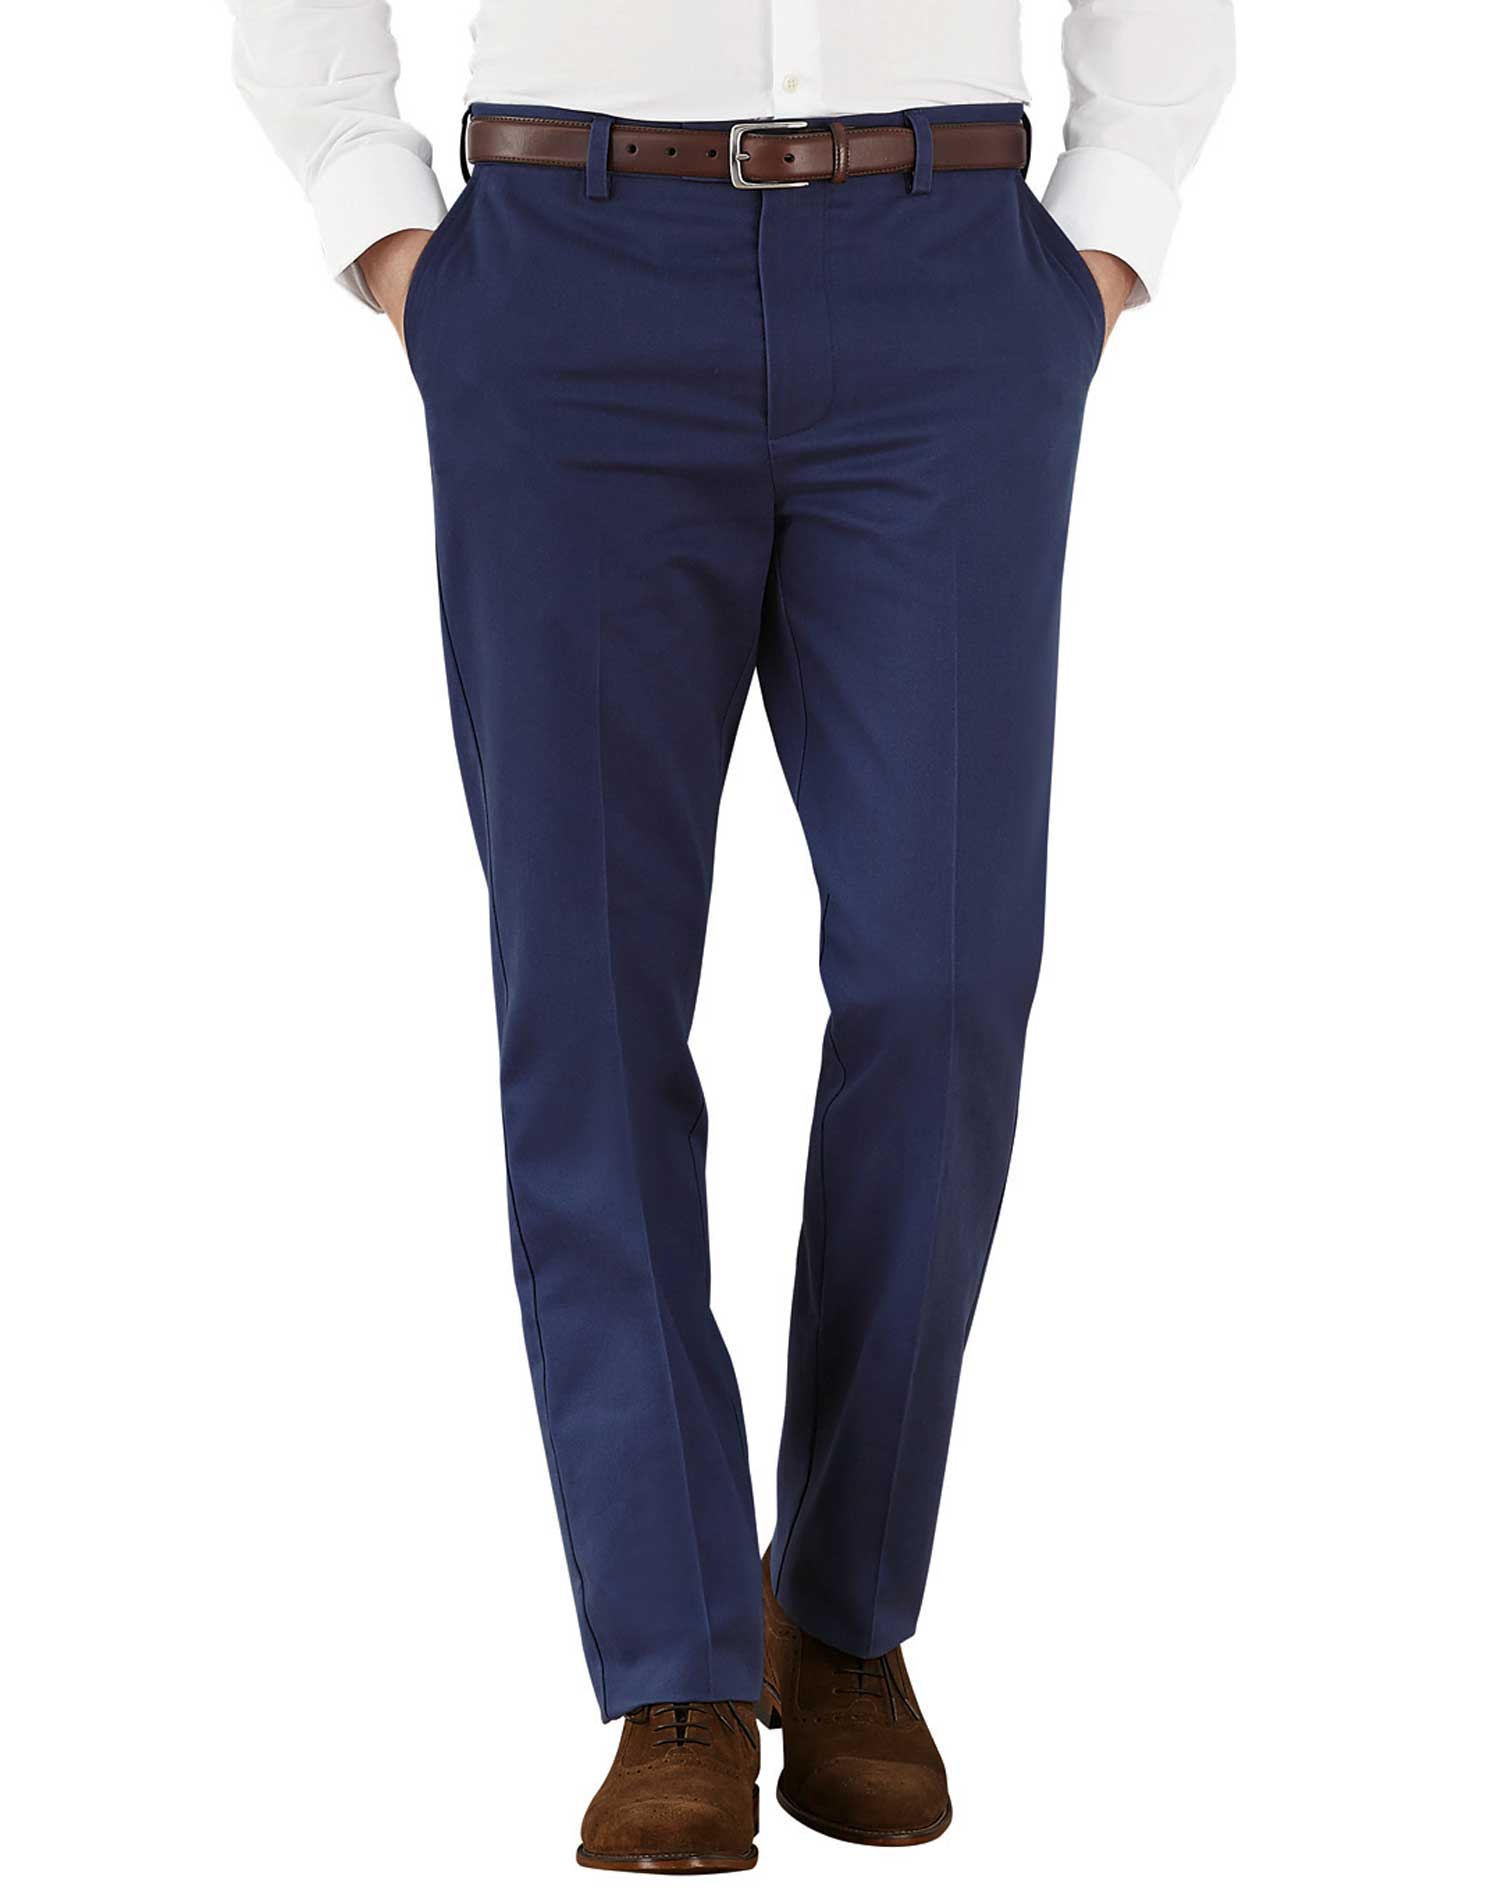 Marine Blue Slim Fit Flat Front Non-Iron Cotton Chino Trousers Size W42 L29 by Charles Tyrwhitt